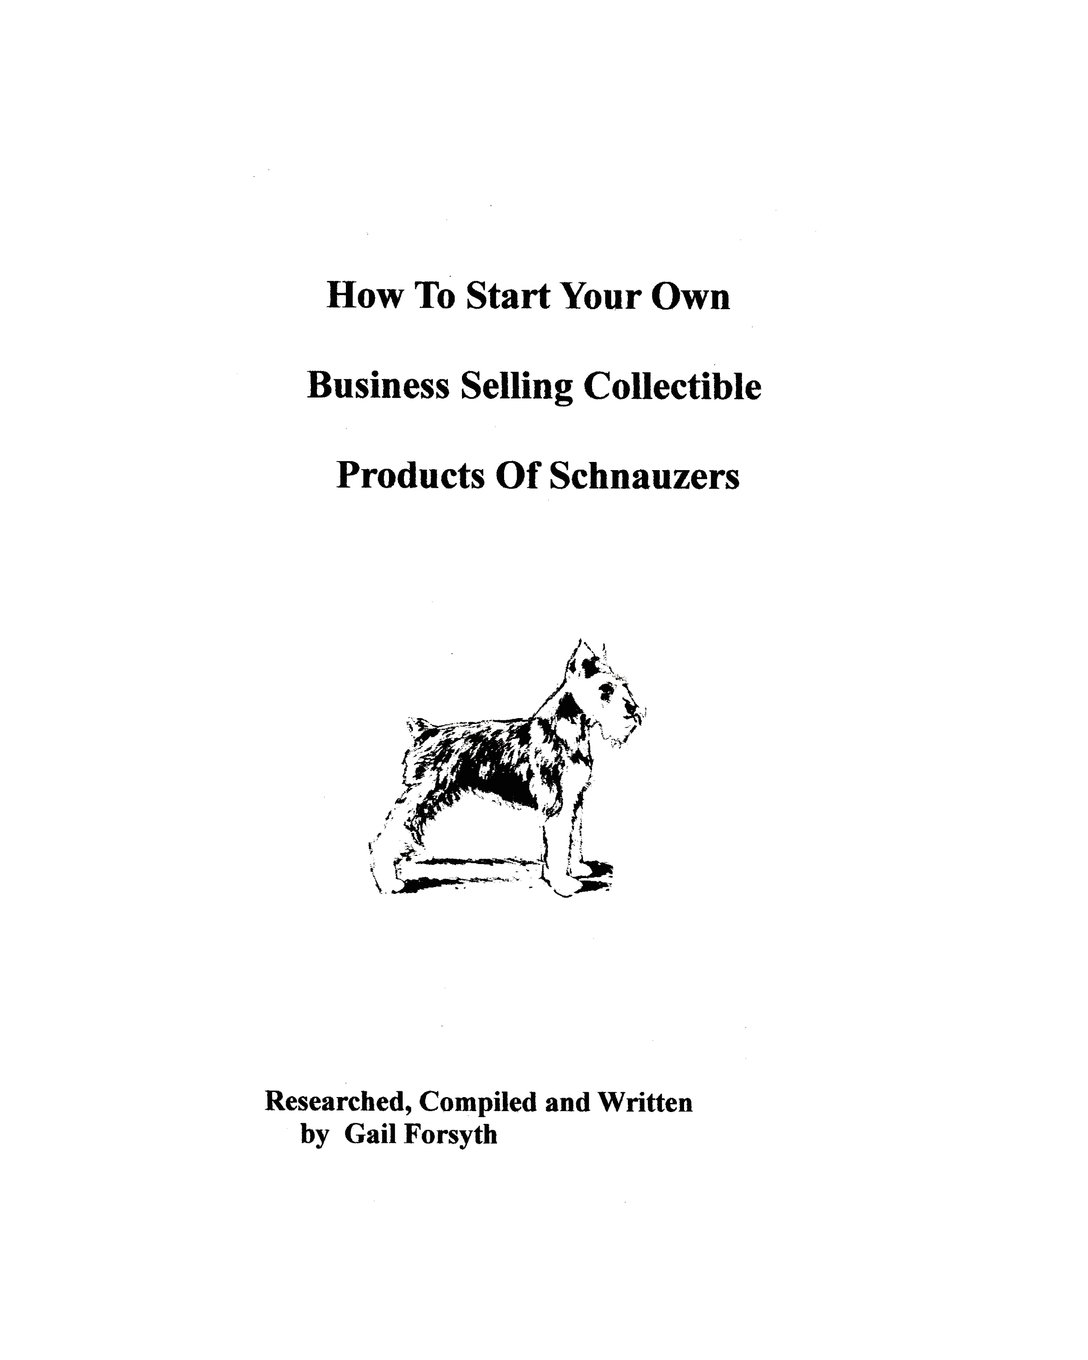 How To Start Your Own Business Selling Collectible Products Of Schnauzers ebook